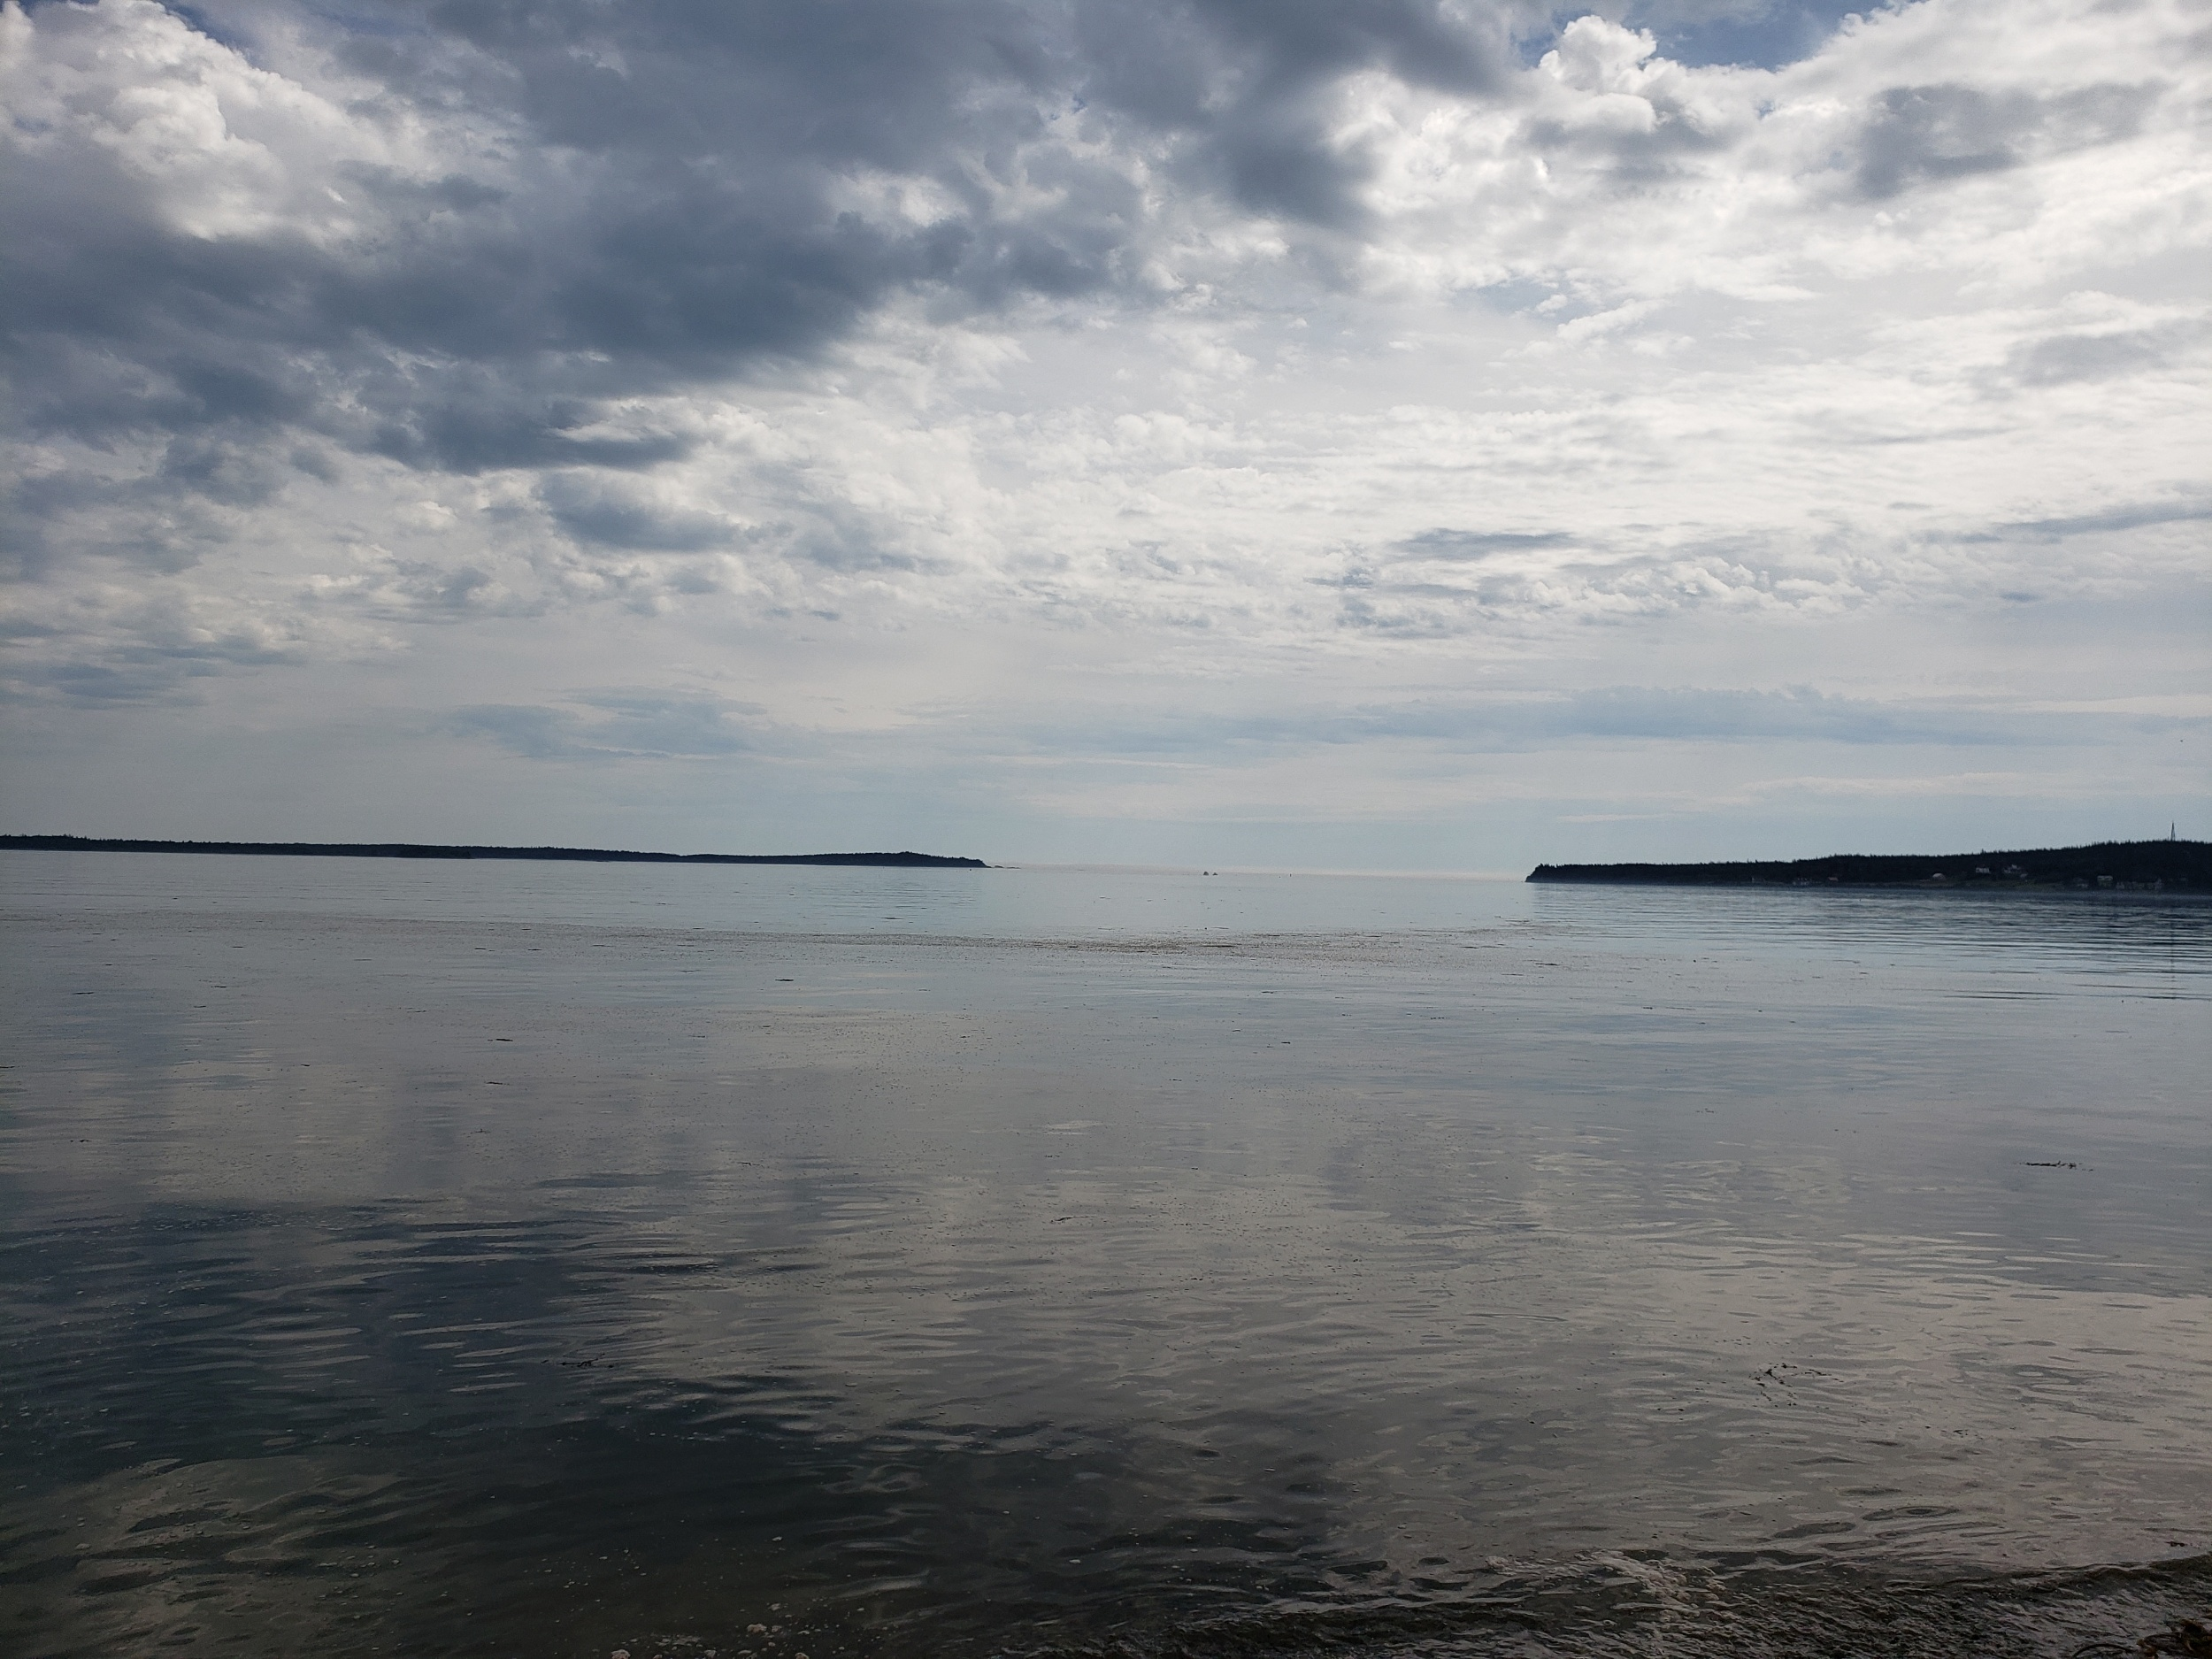 View from beach in South Lubec looking out onto Quoddy Head State Park to the right and Campobello Island to the left